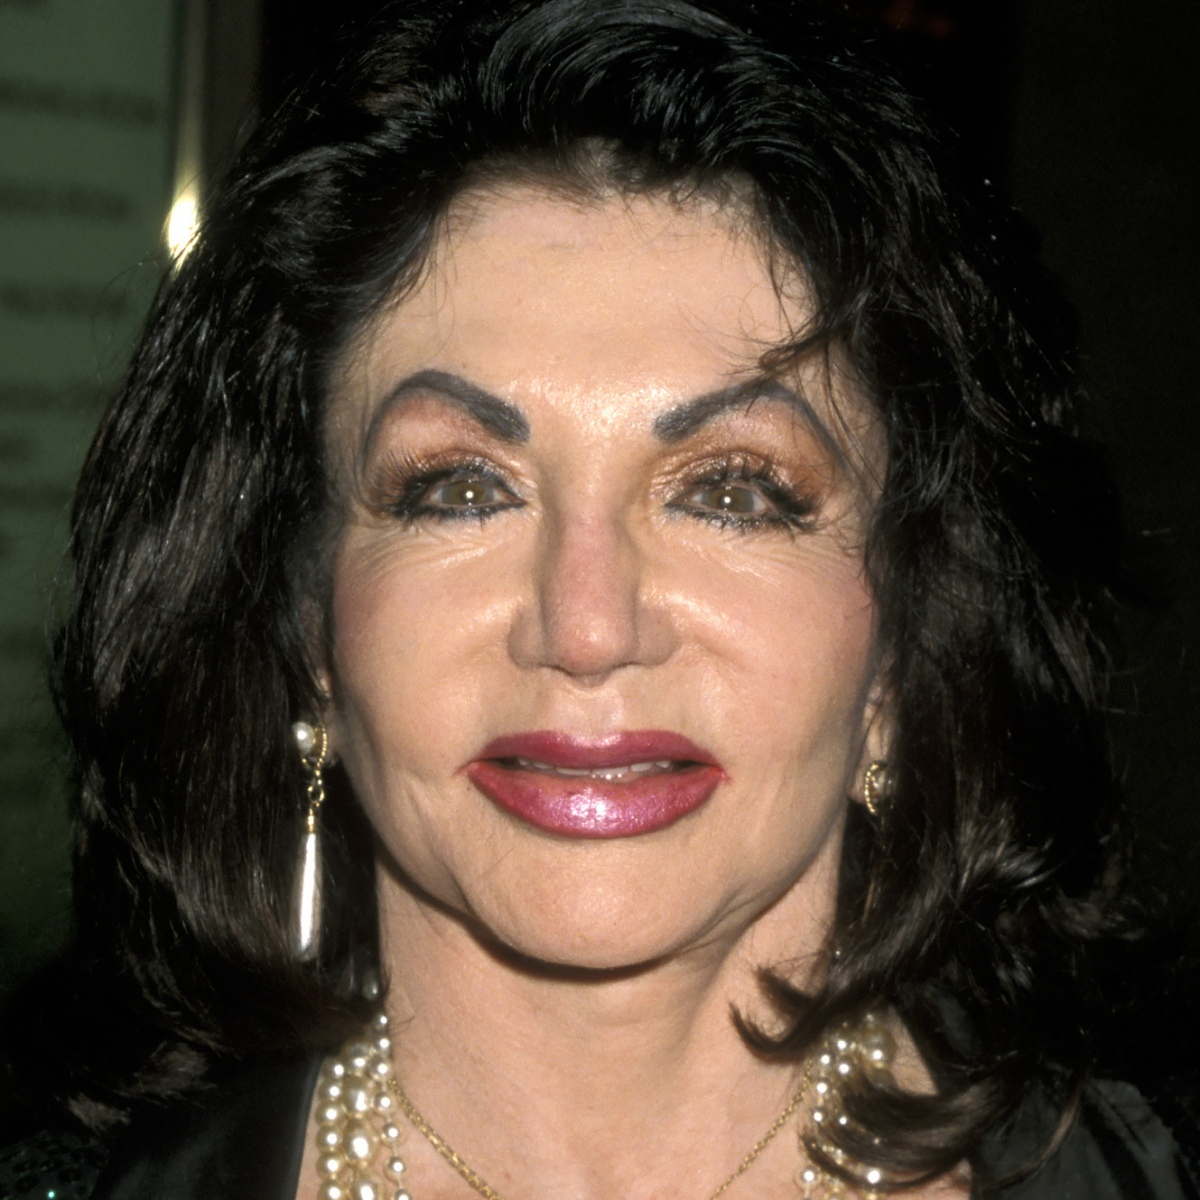 Jackie Stallone - Actor - CineMagia.ro  |Jackie Stallone